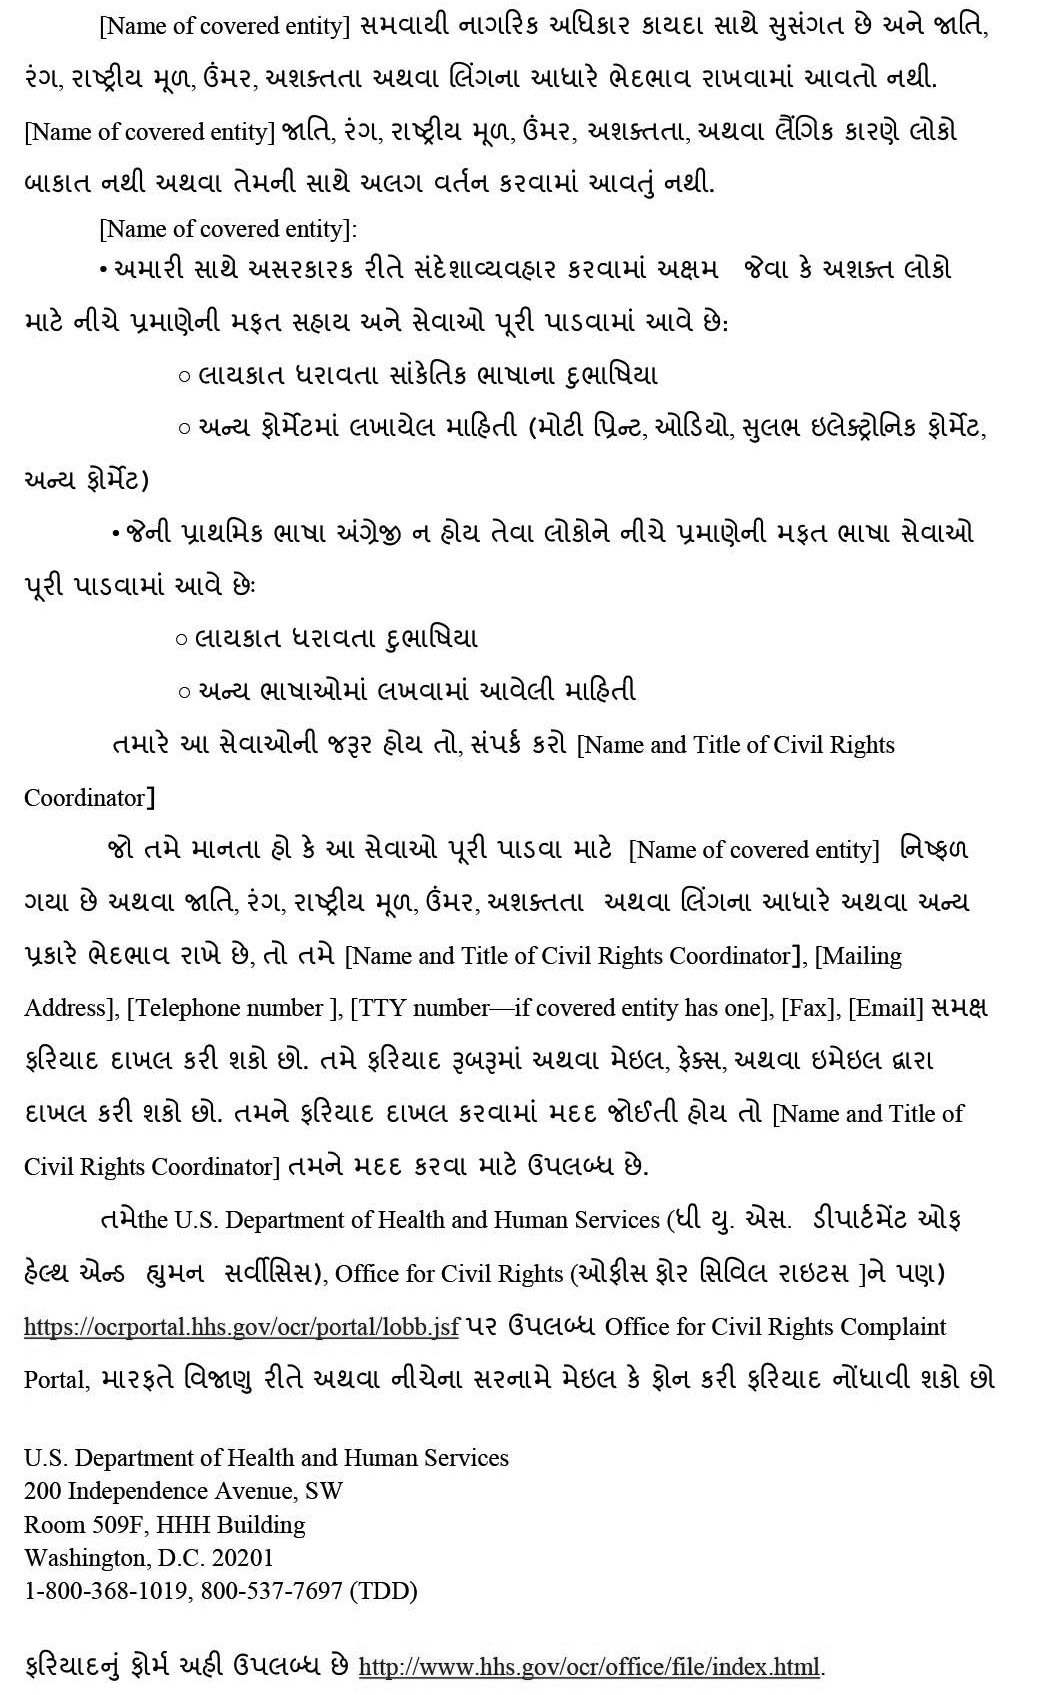 sample ce notice gujarati